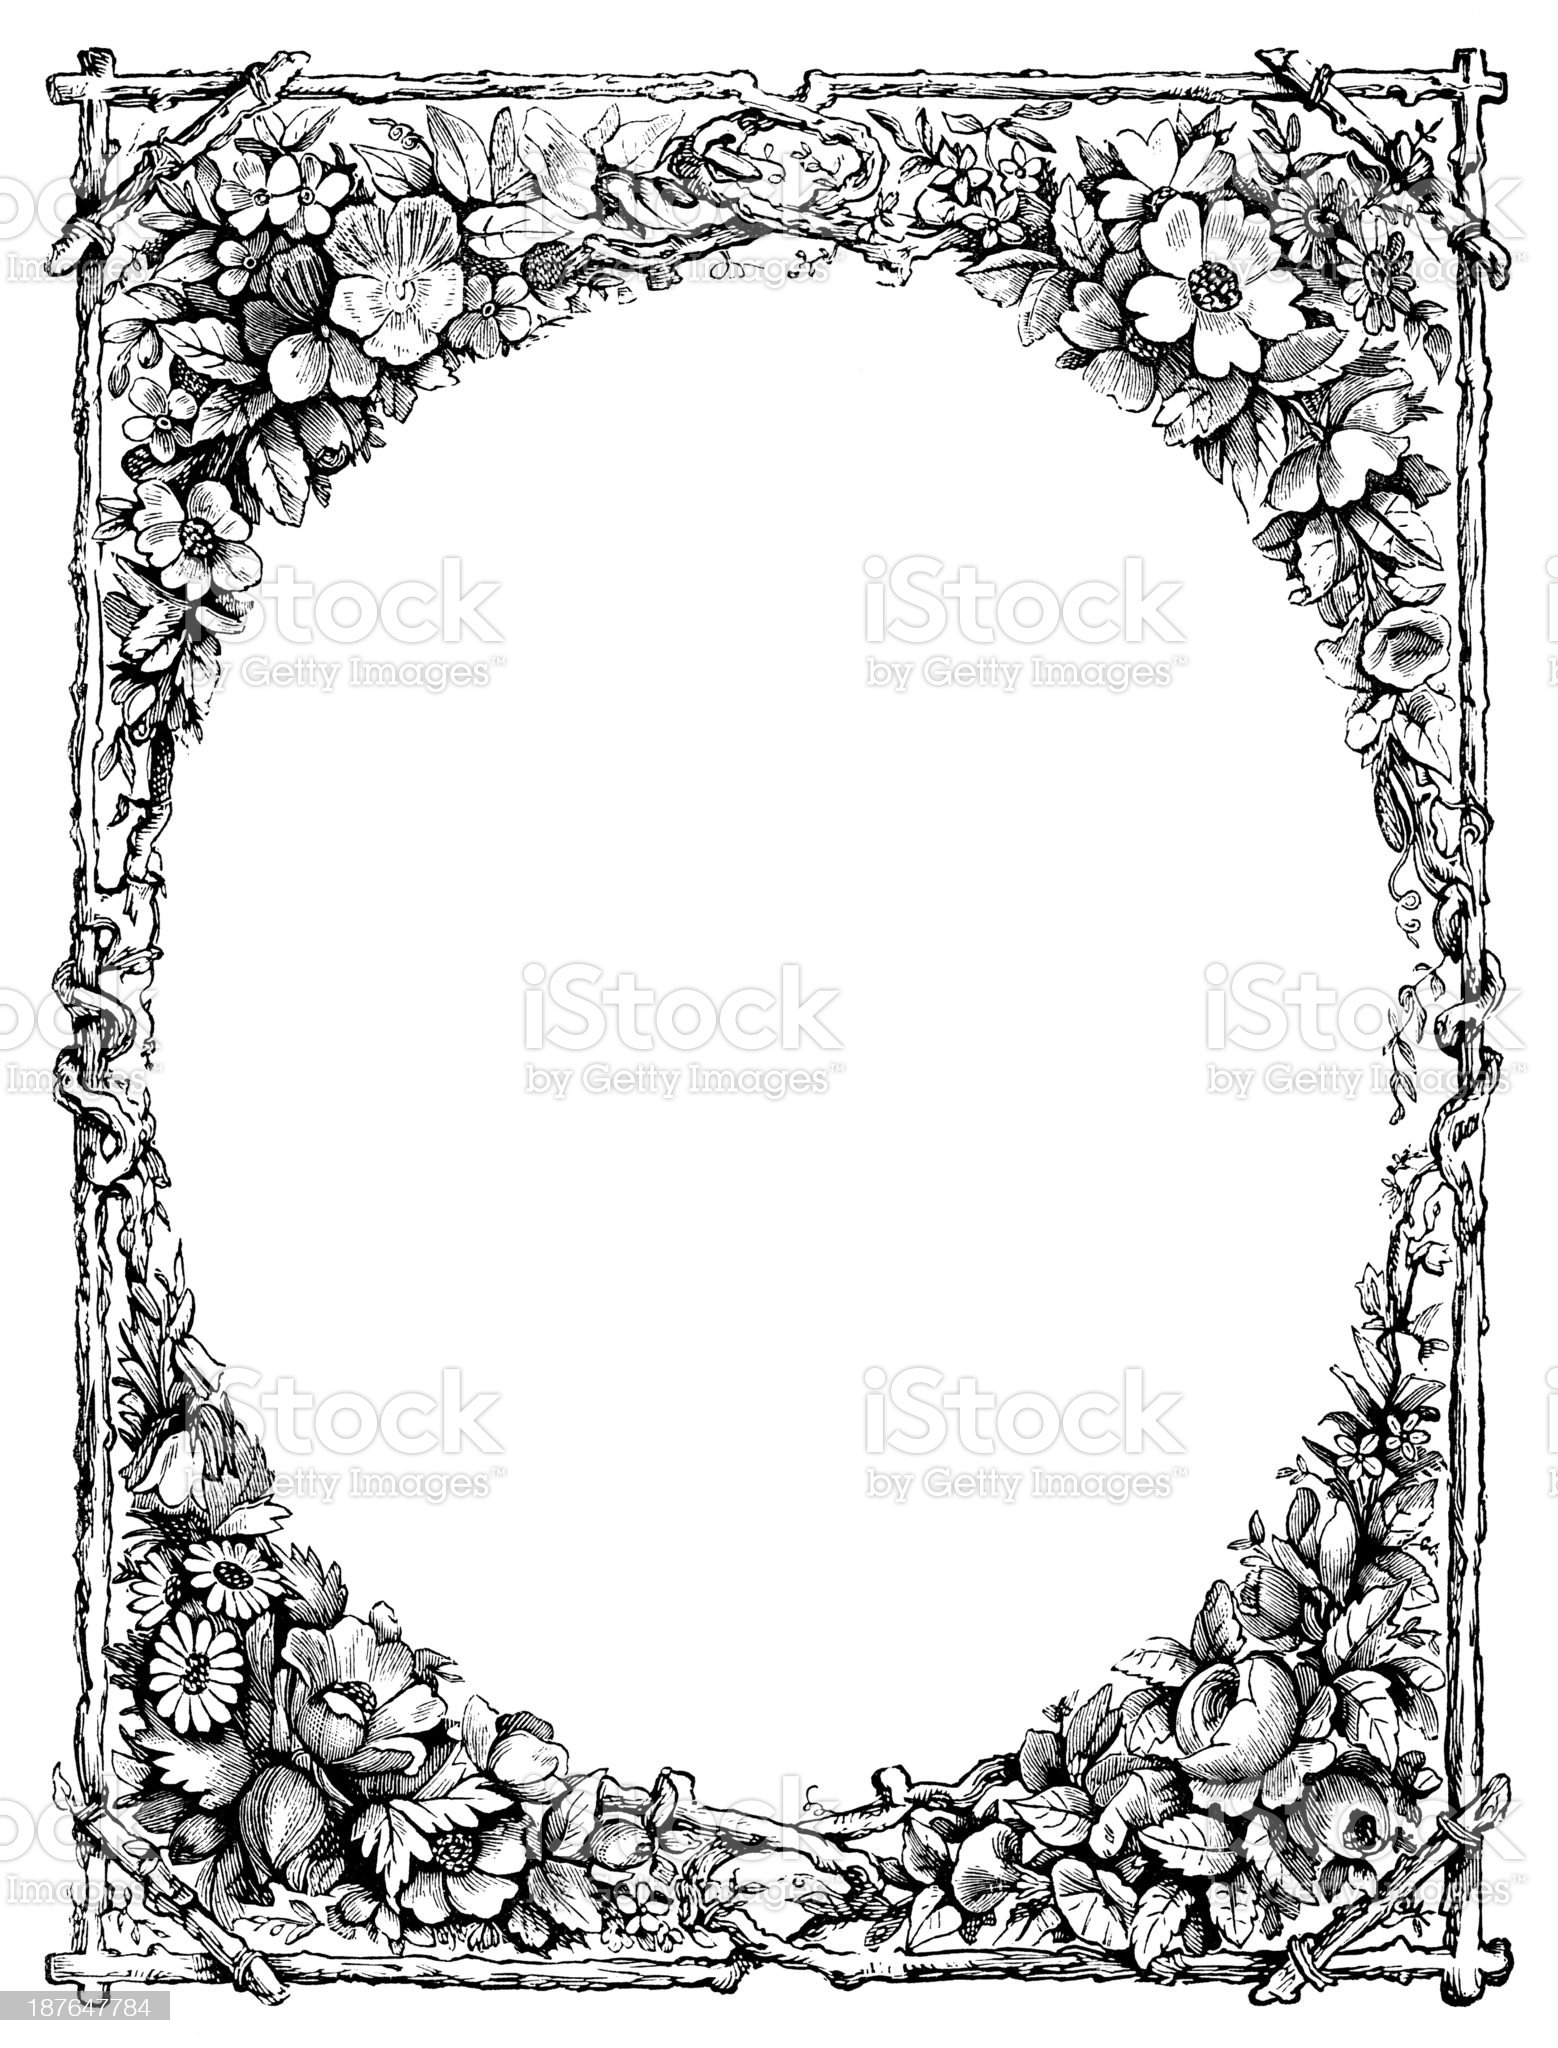 Floral frame - Victorian engraving royalty-free stock vector art